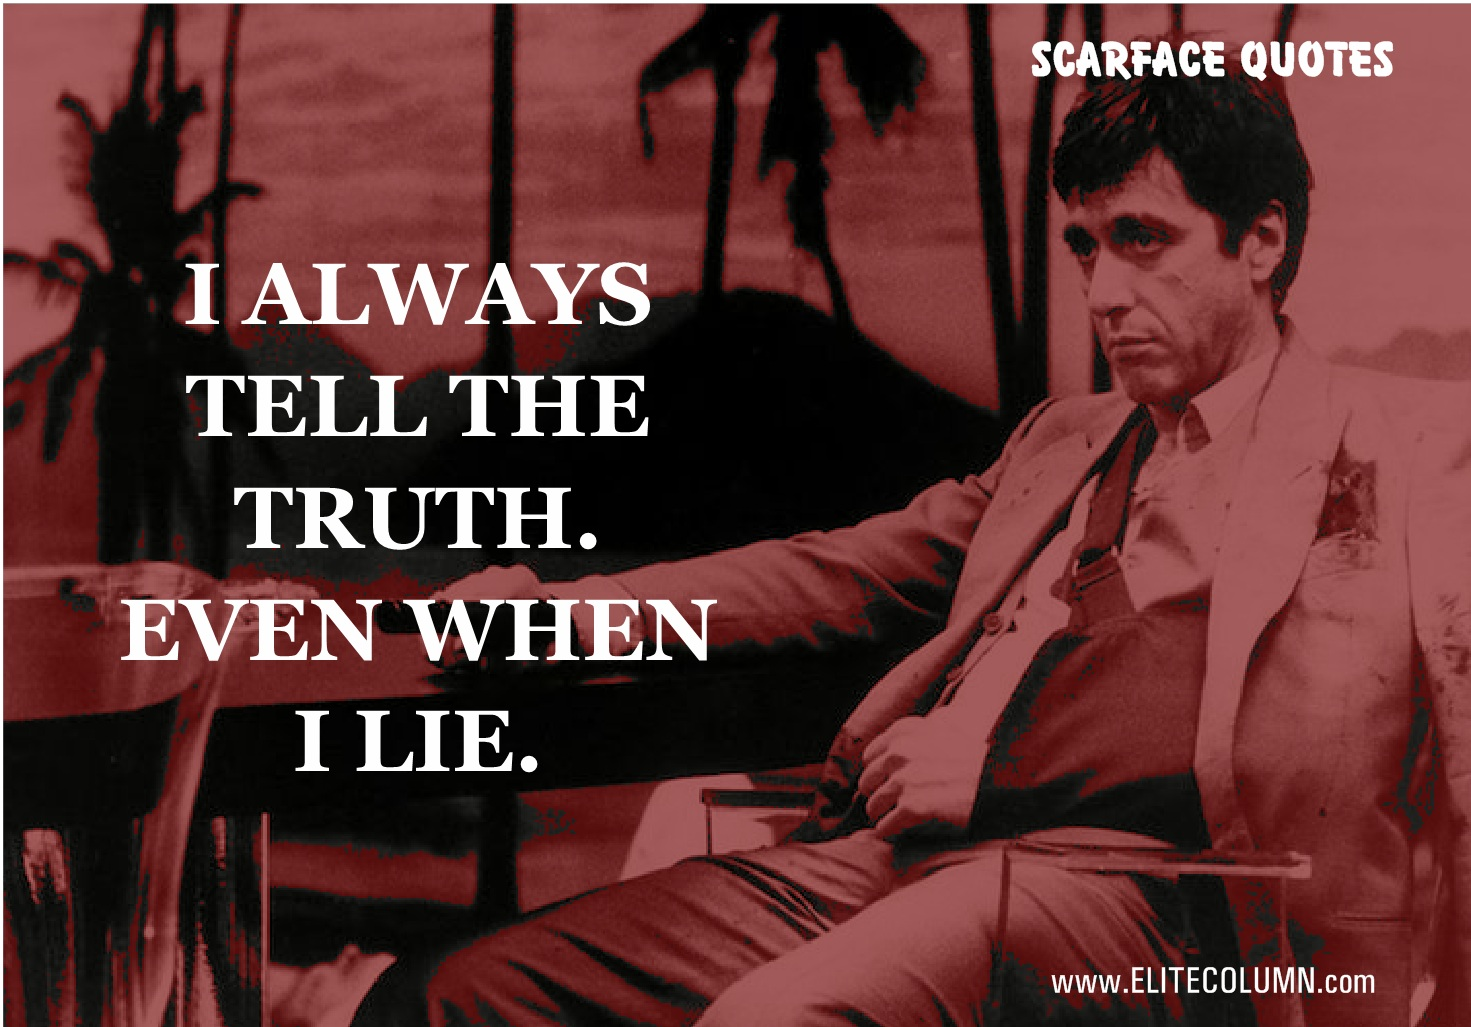 With The Right Woman Scarface Quote: 14 Best Scarface Quotes Only For 18 Years Old And Above